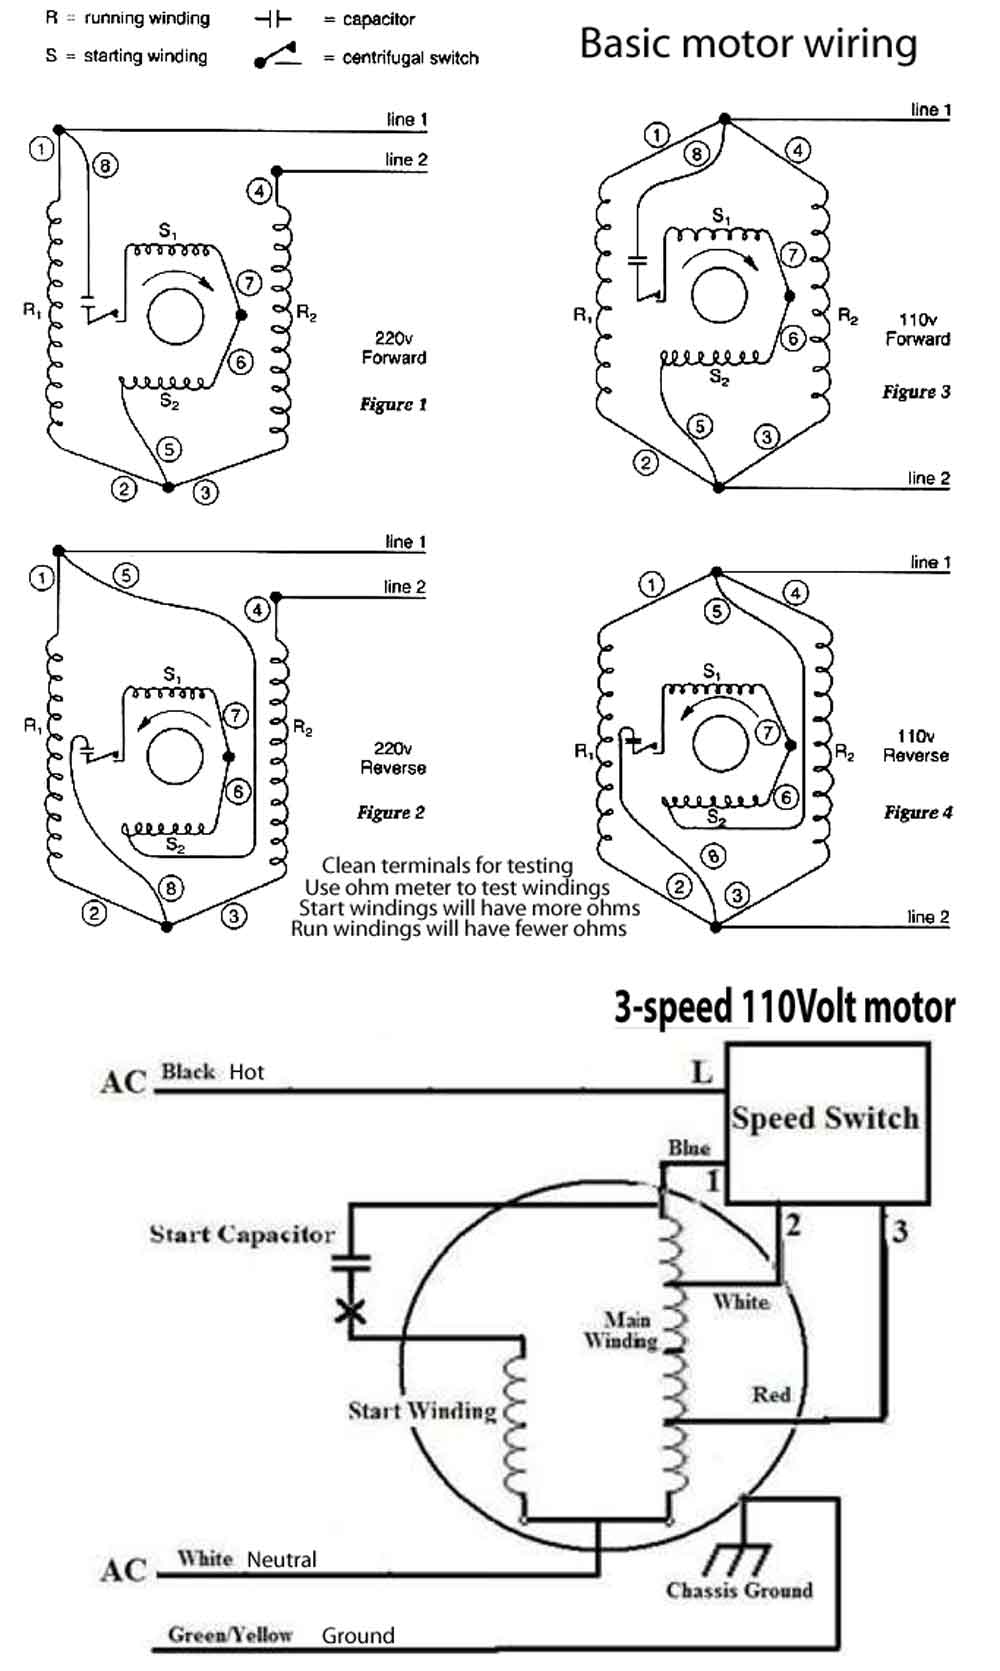 Motor wiring 500 how to wire 3 speed fan switch Dayton Thermostats Manuals at eliteediting.co